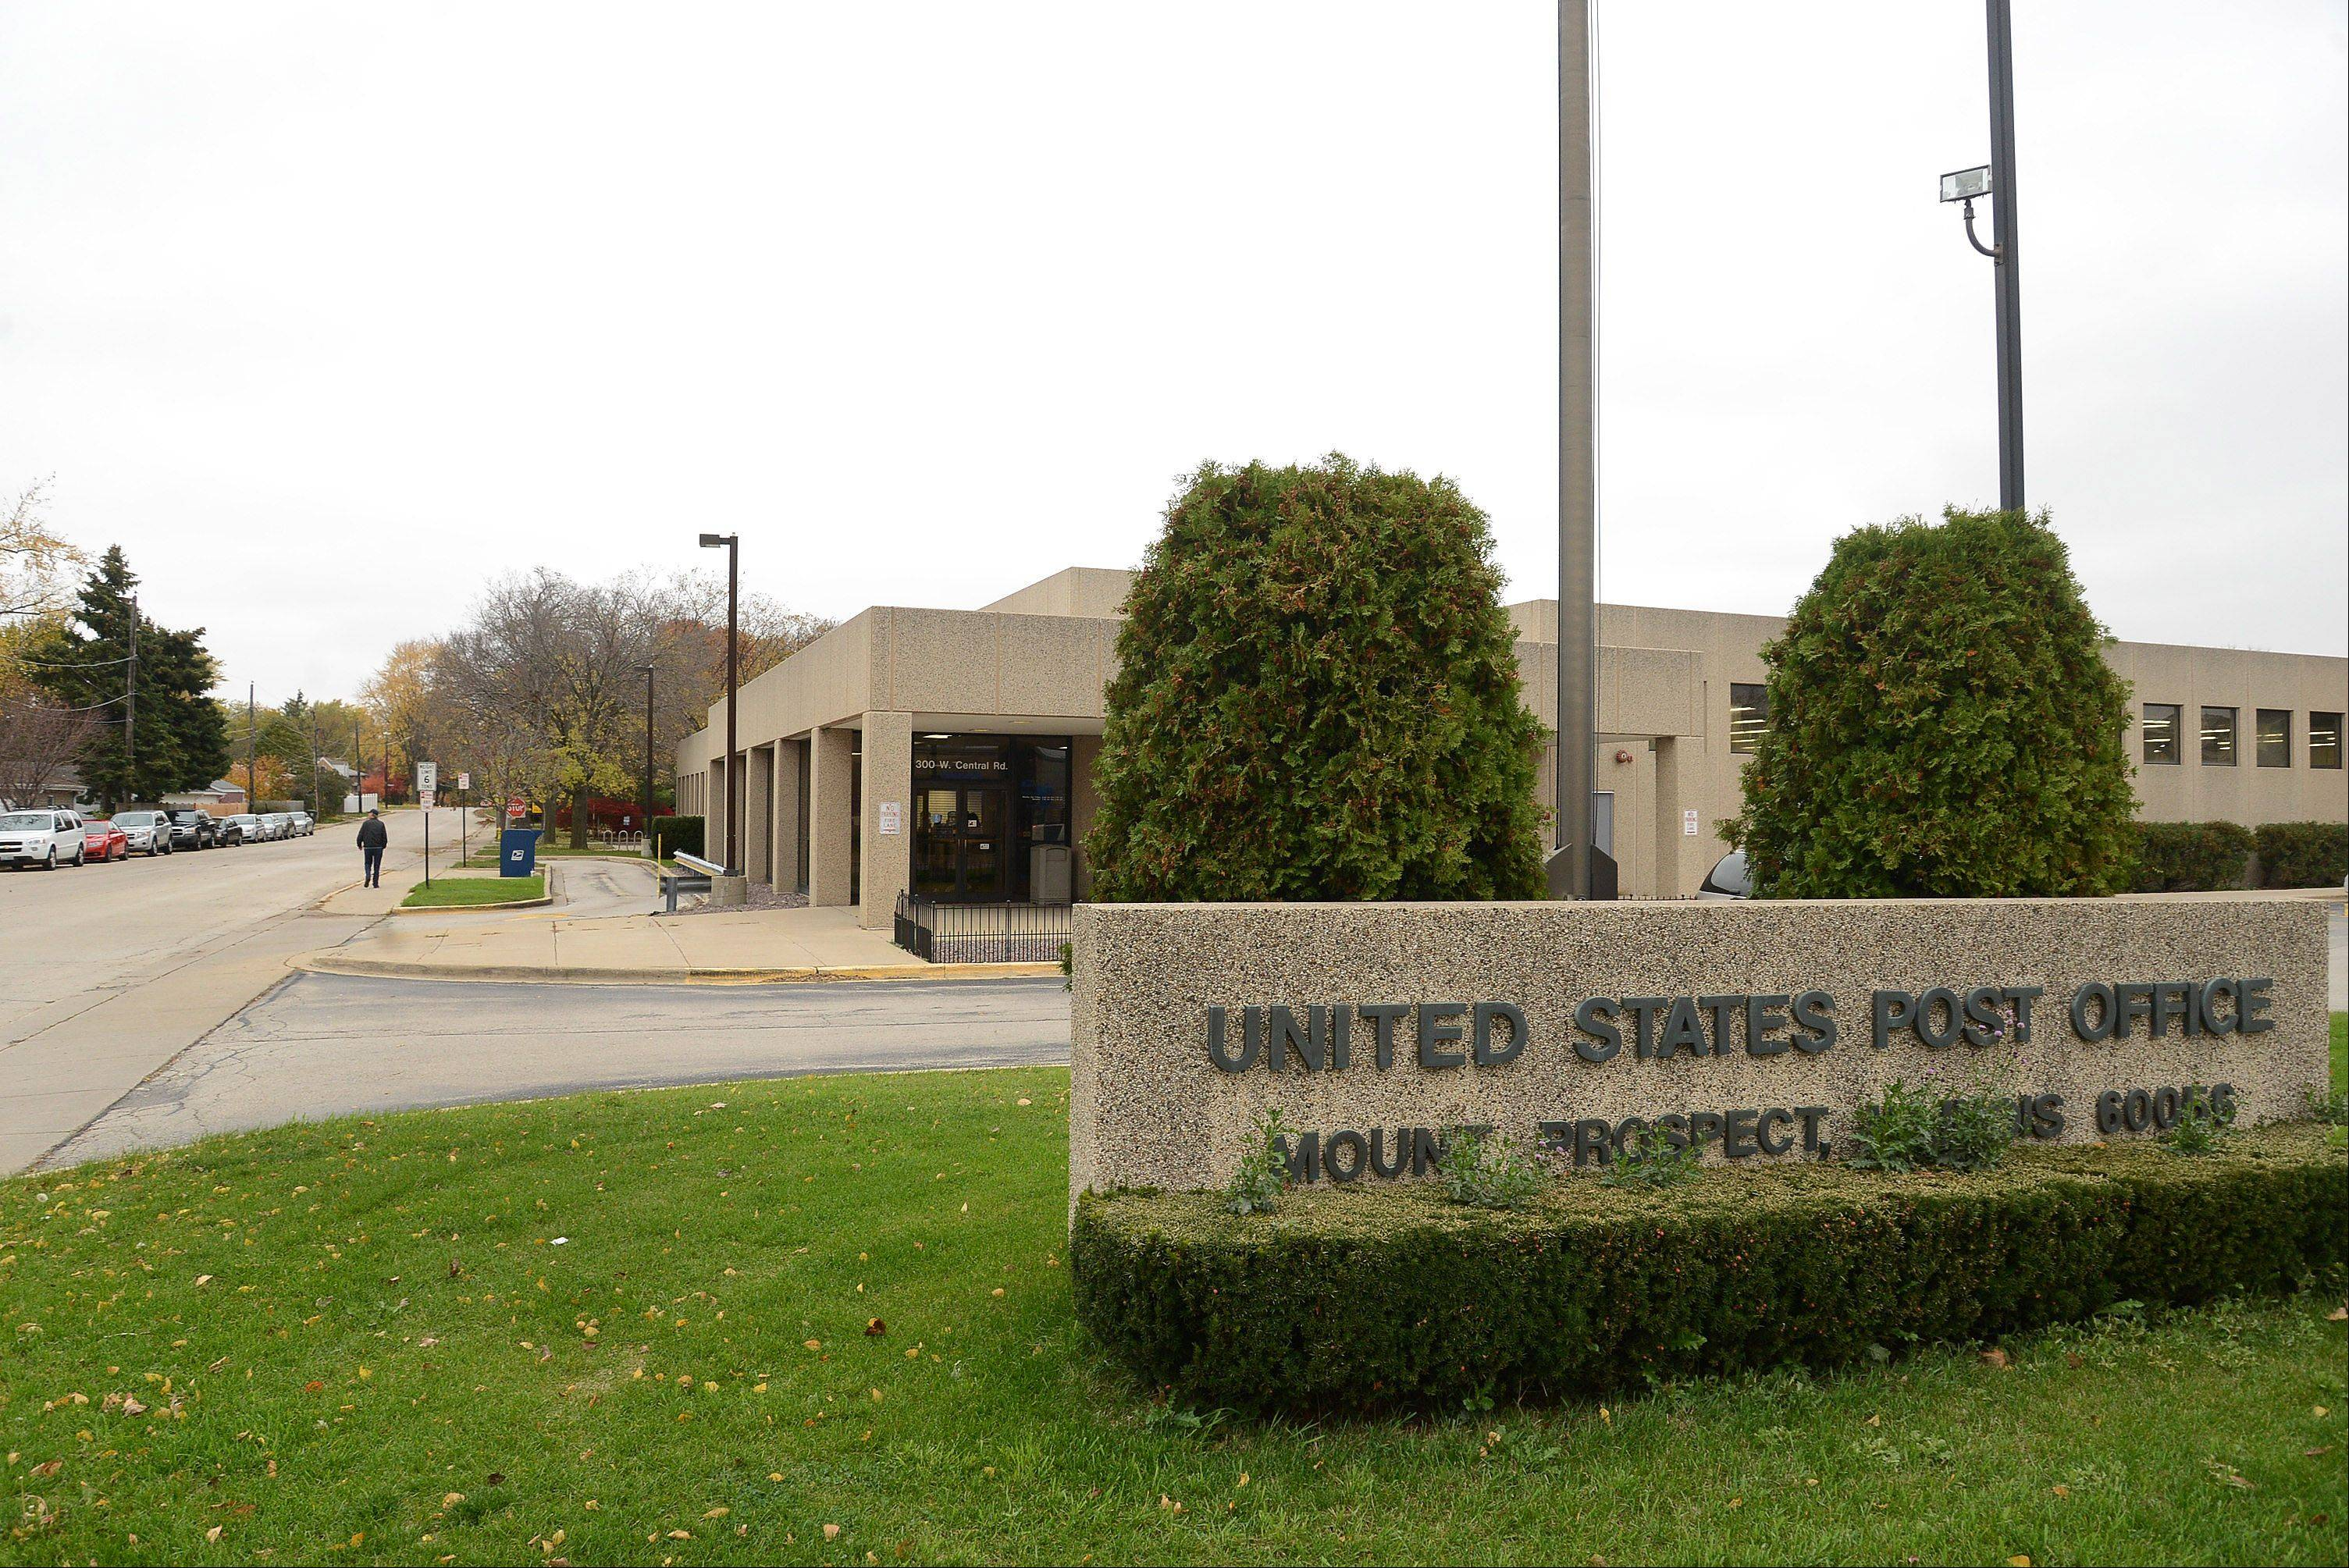 Homes in Mt. Prospect post office site's future?